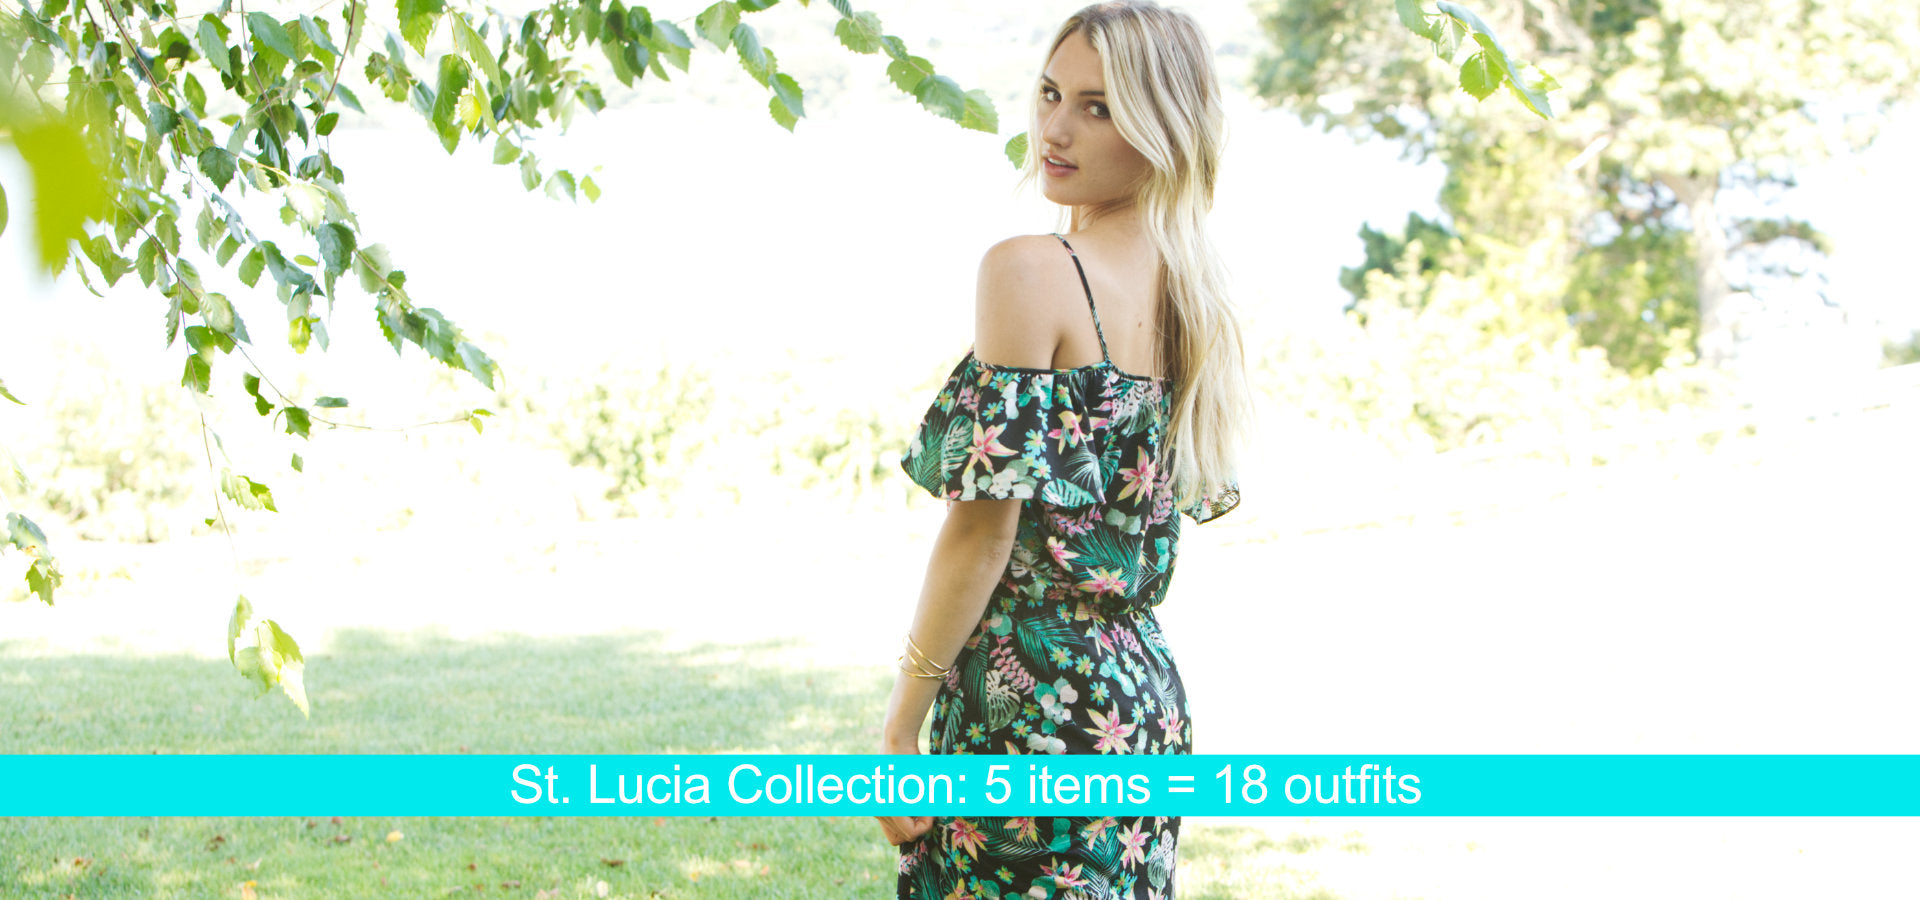 St. Lucia Collection